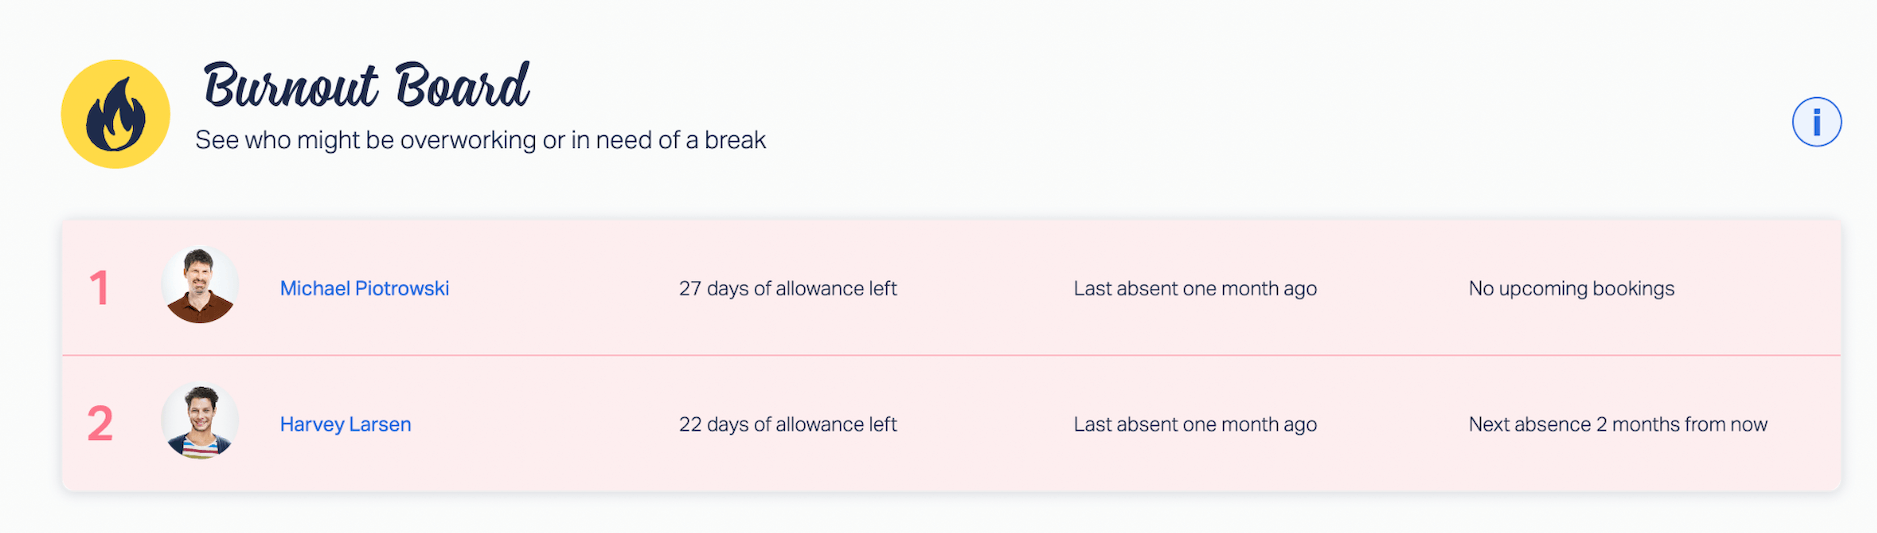 Burnout Board in Timetastic: See who might be overworking or in need of a break.